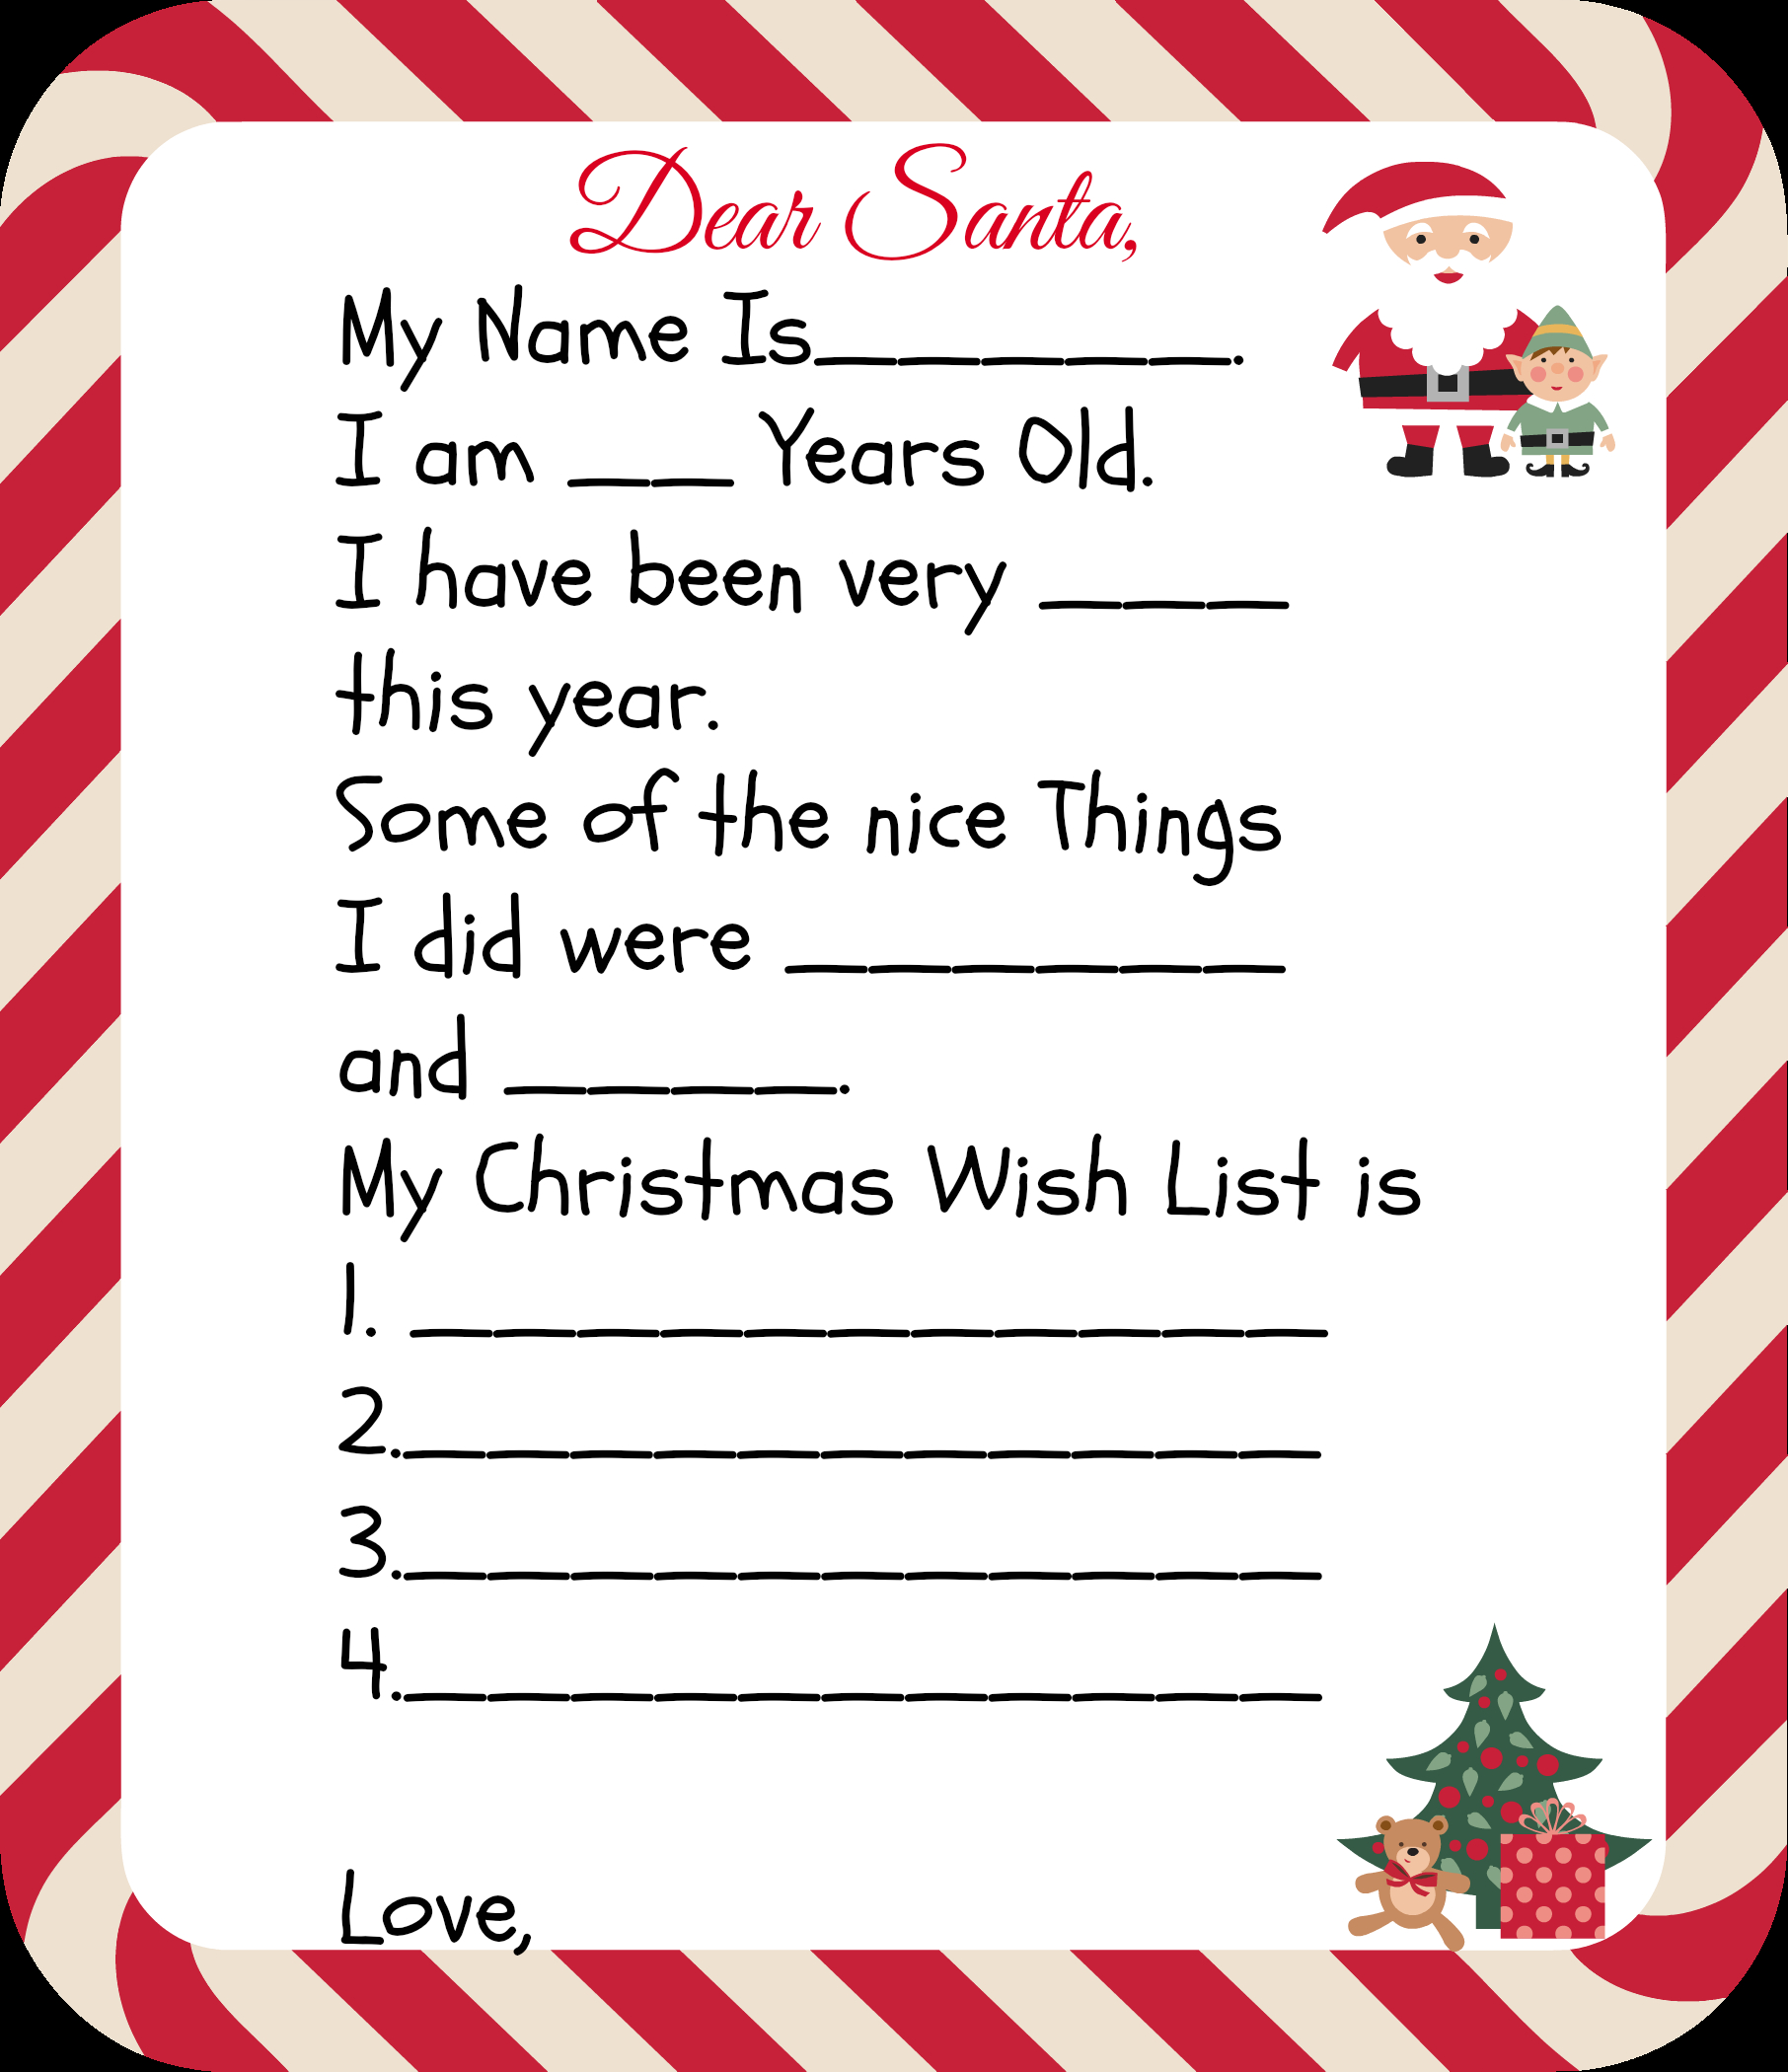 Free Letter to Santa Template Printable - Free Printable Santa Letters for Kids Pinterest